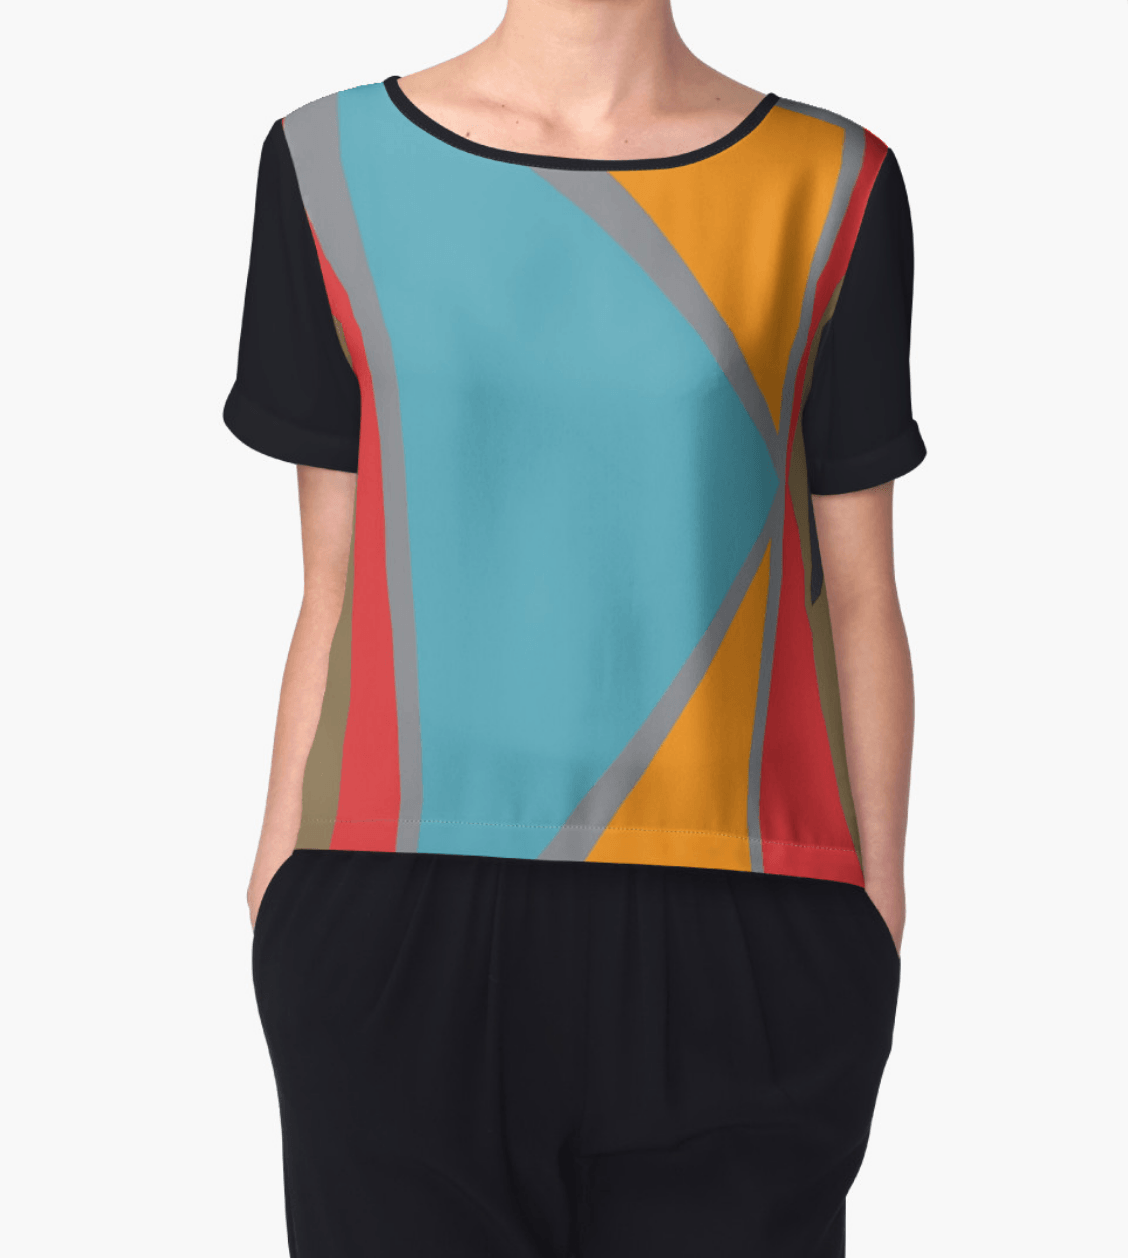 Geometric Tops - Chiffon Top - Women Blouse - Modern Clothing-TheGretest